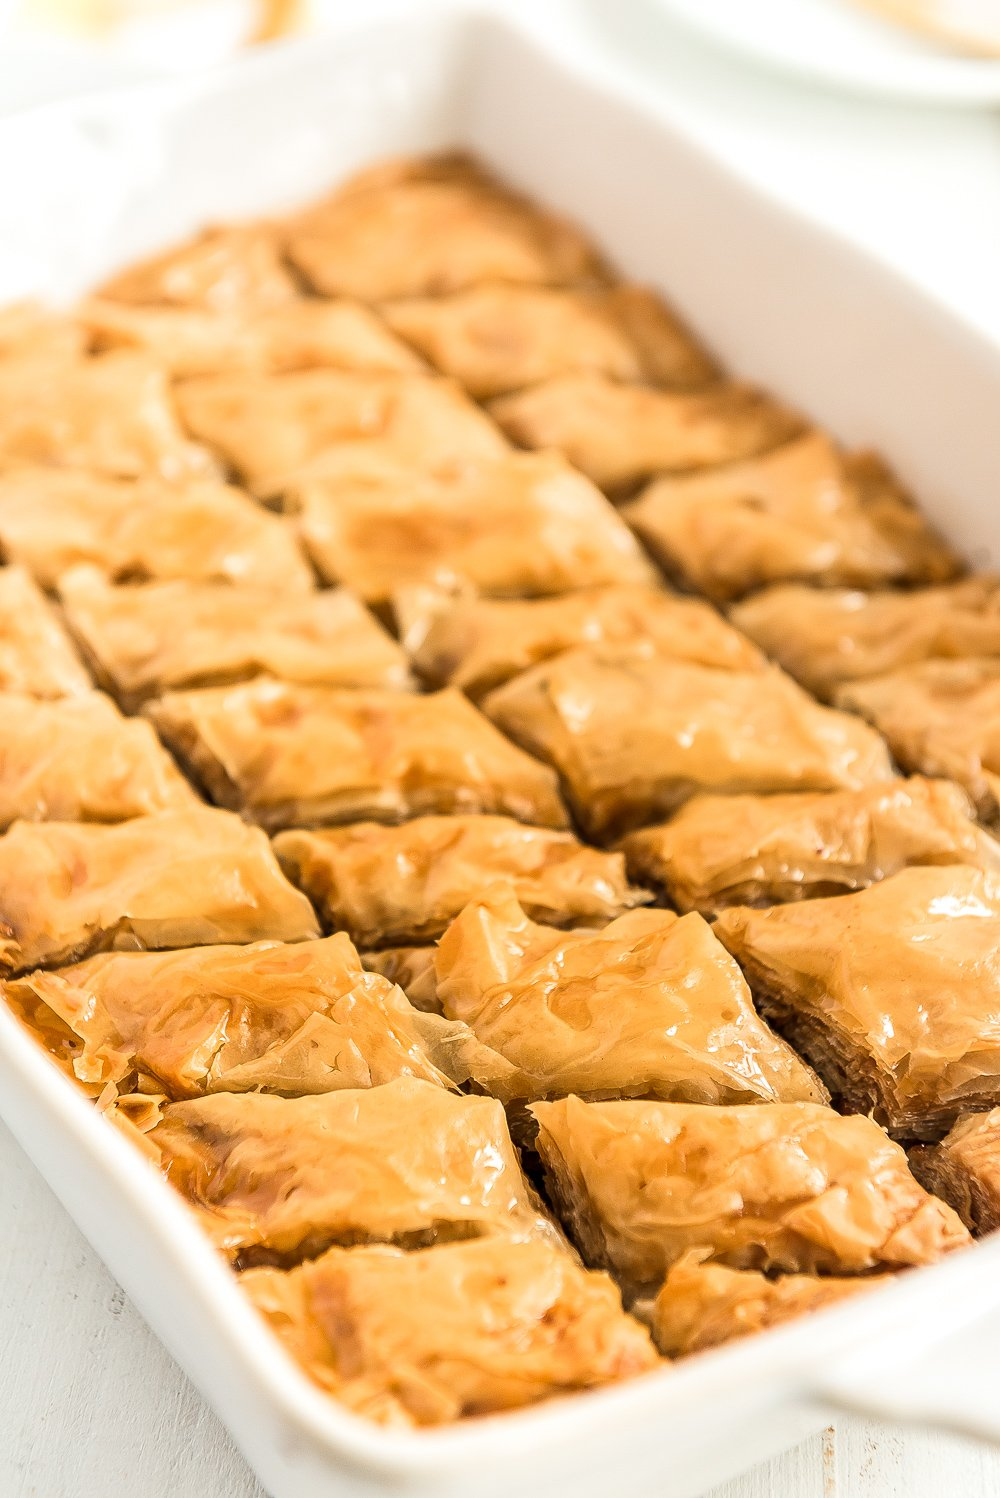 Baked baklava in a white baking dish.